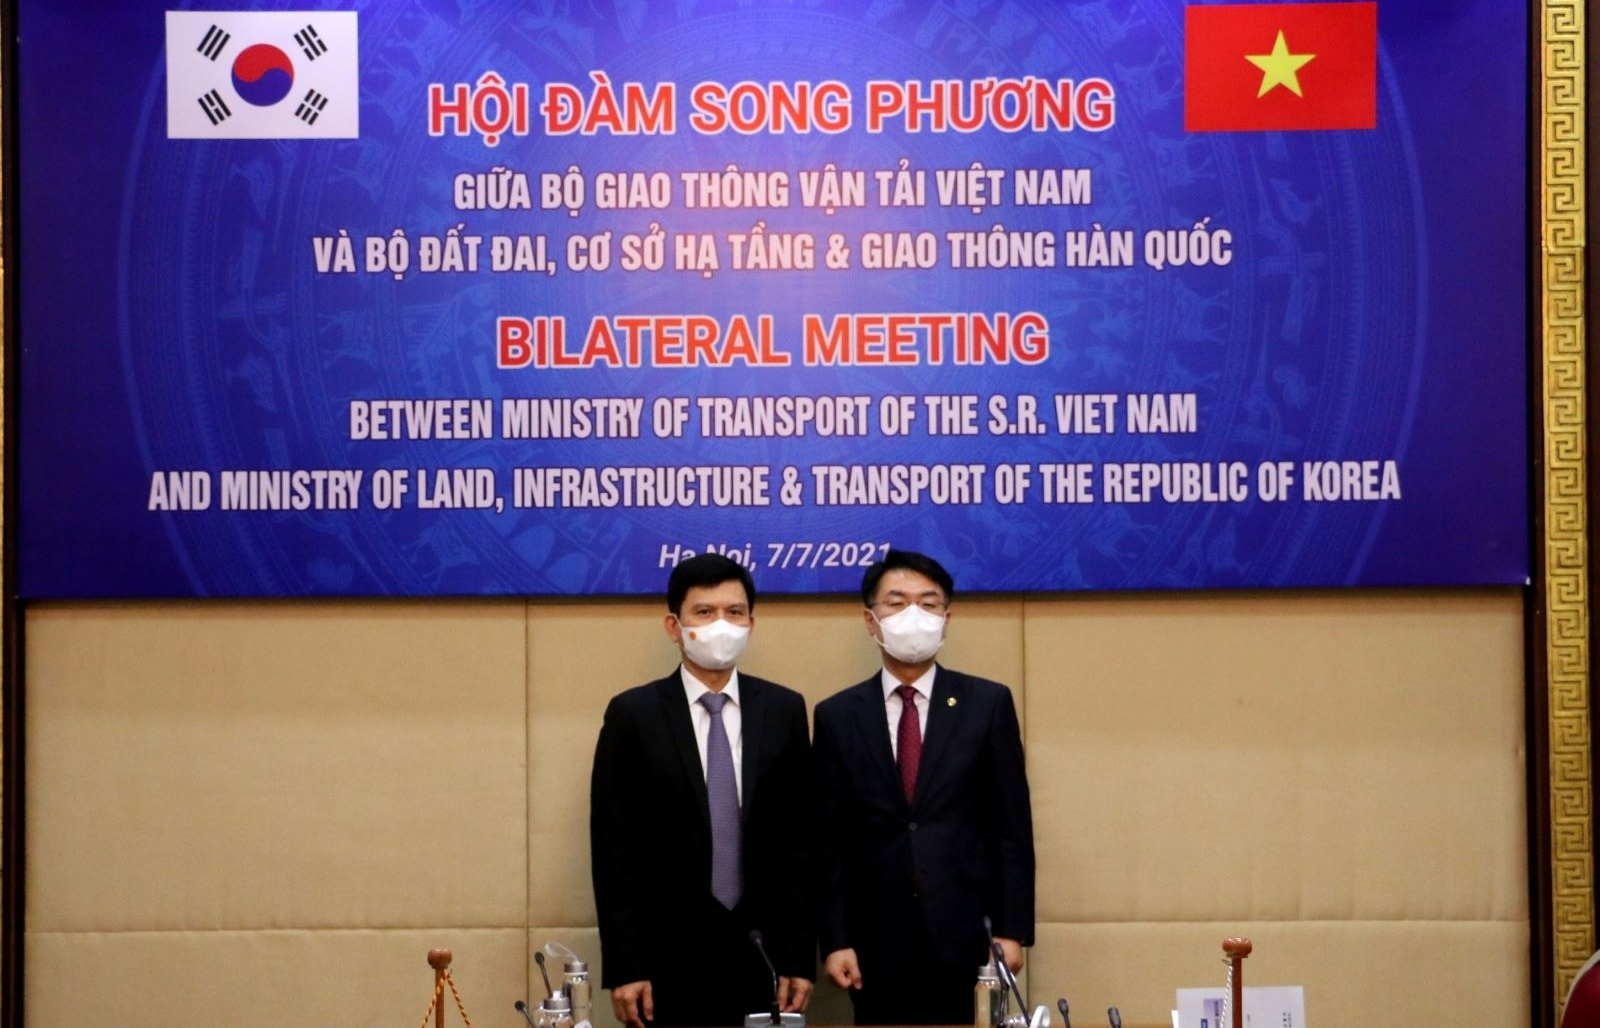 Vietnam and South Korea agree to strengthen cooperation in transport infrastructure